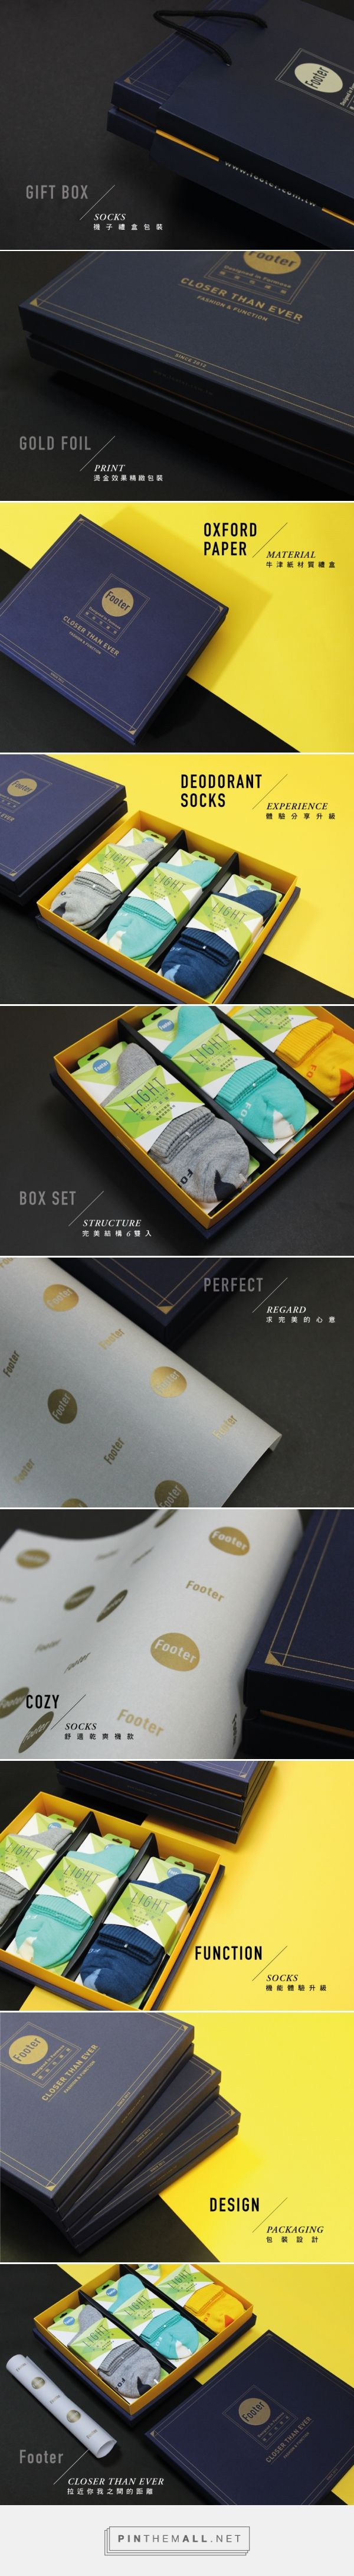 Footer   Fashion & Function Socks Gift Box   Formake Design #packaging